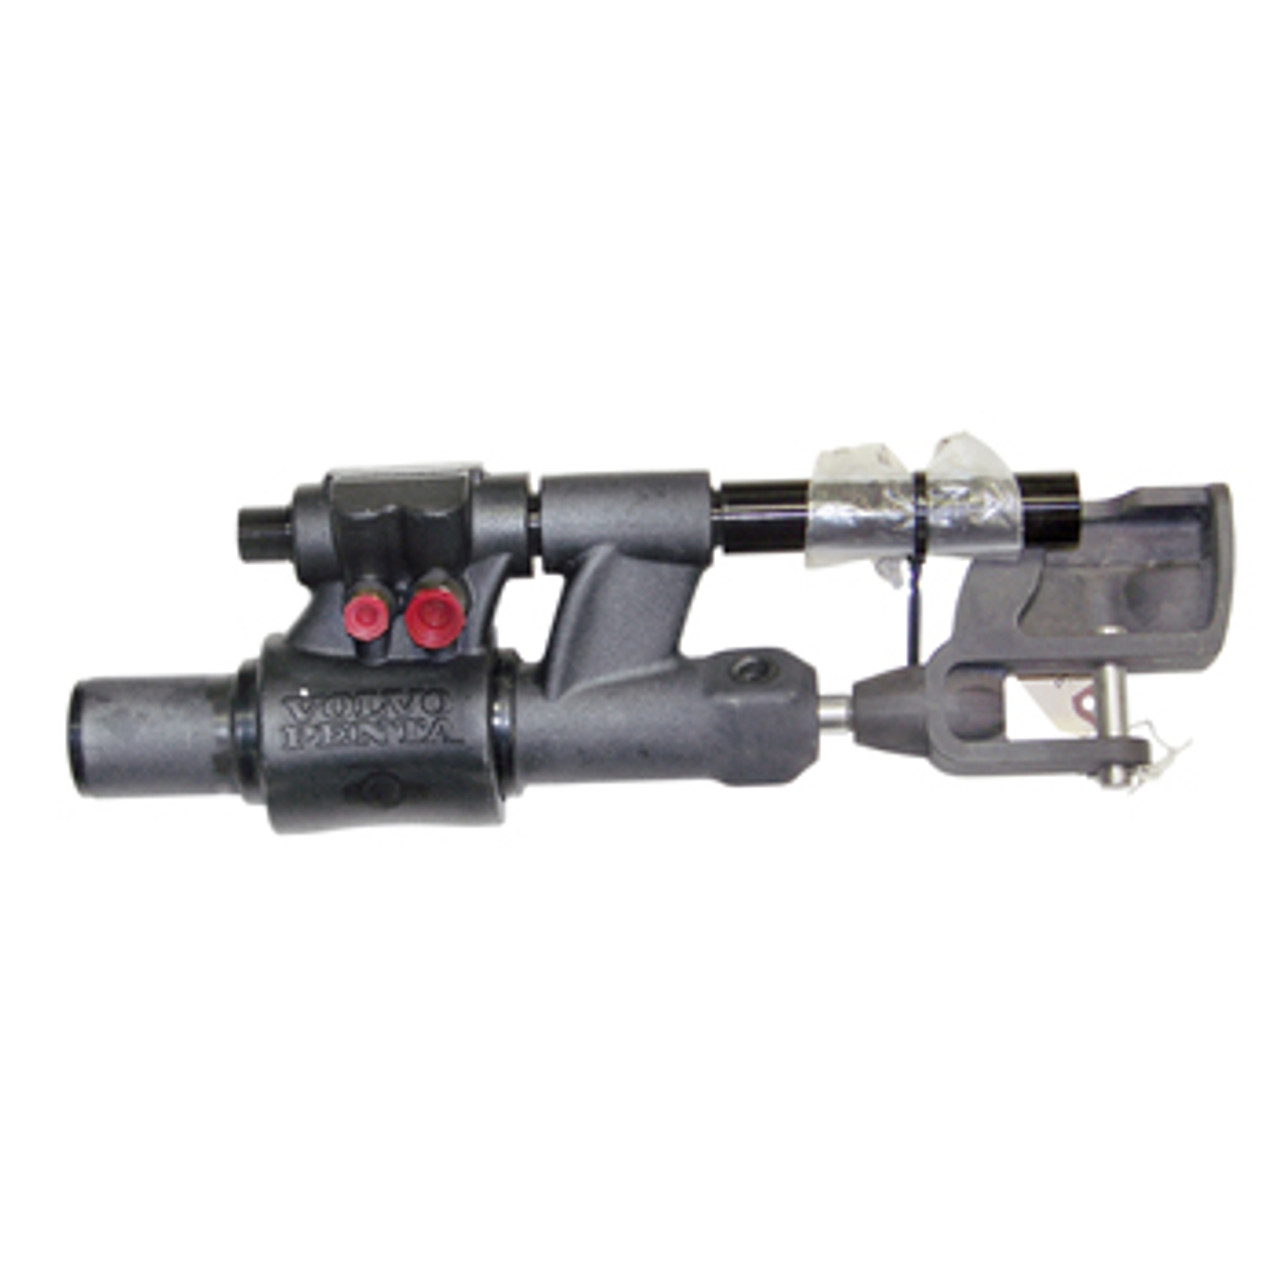 New  Volvo SX-M, SX-A, DPS-A Power Steering Cylinder Replaces # 21910902